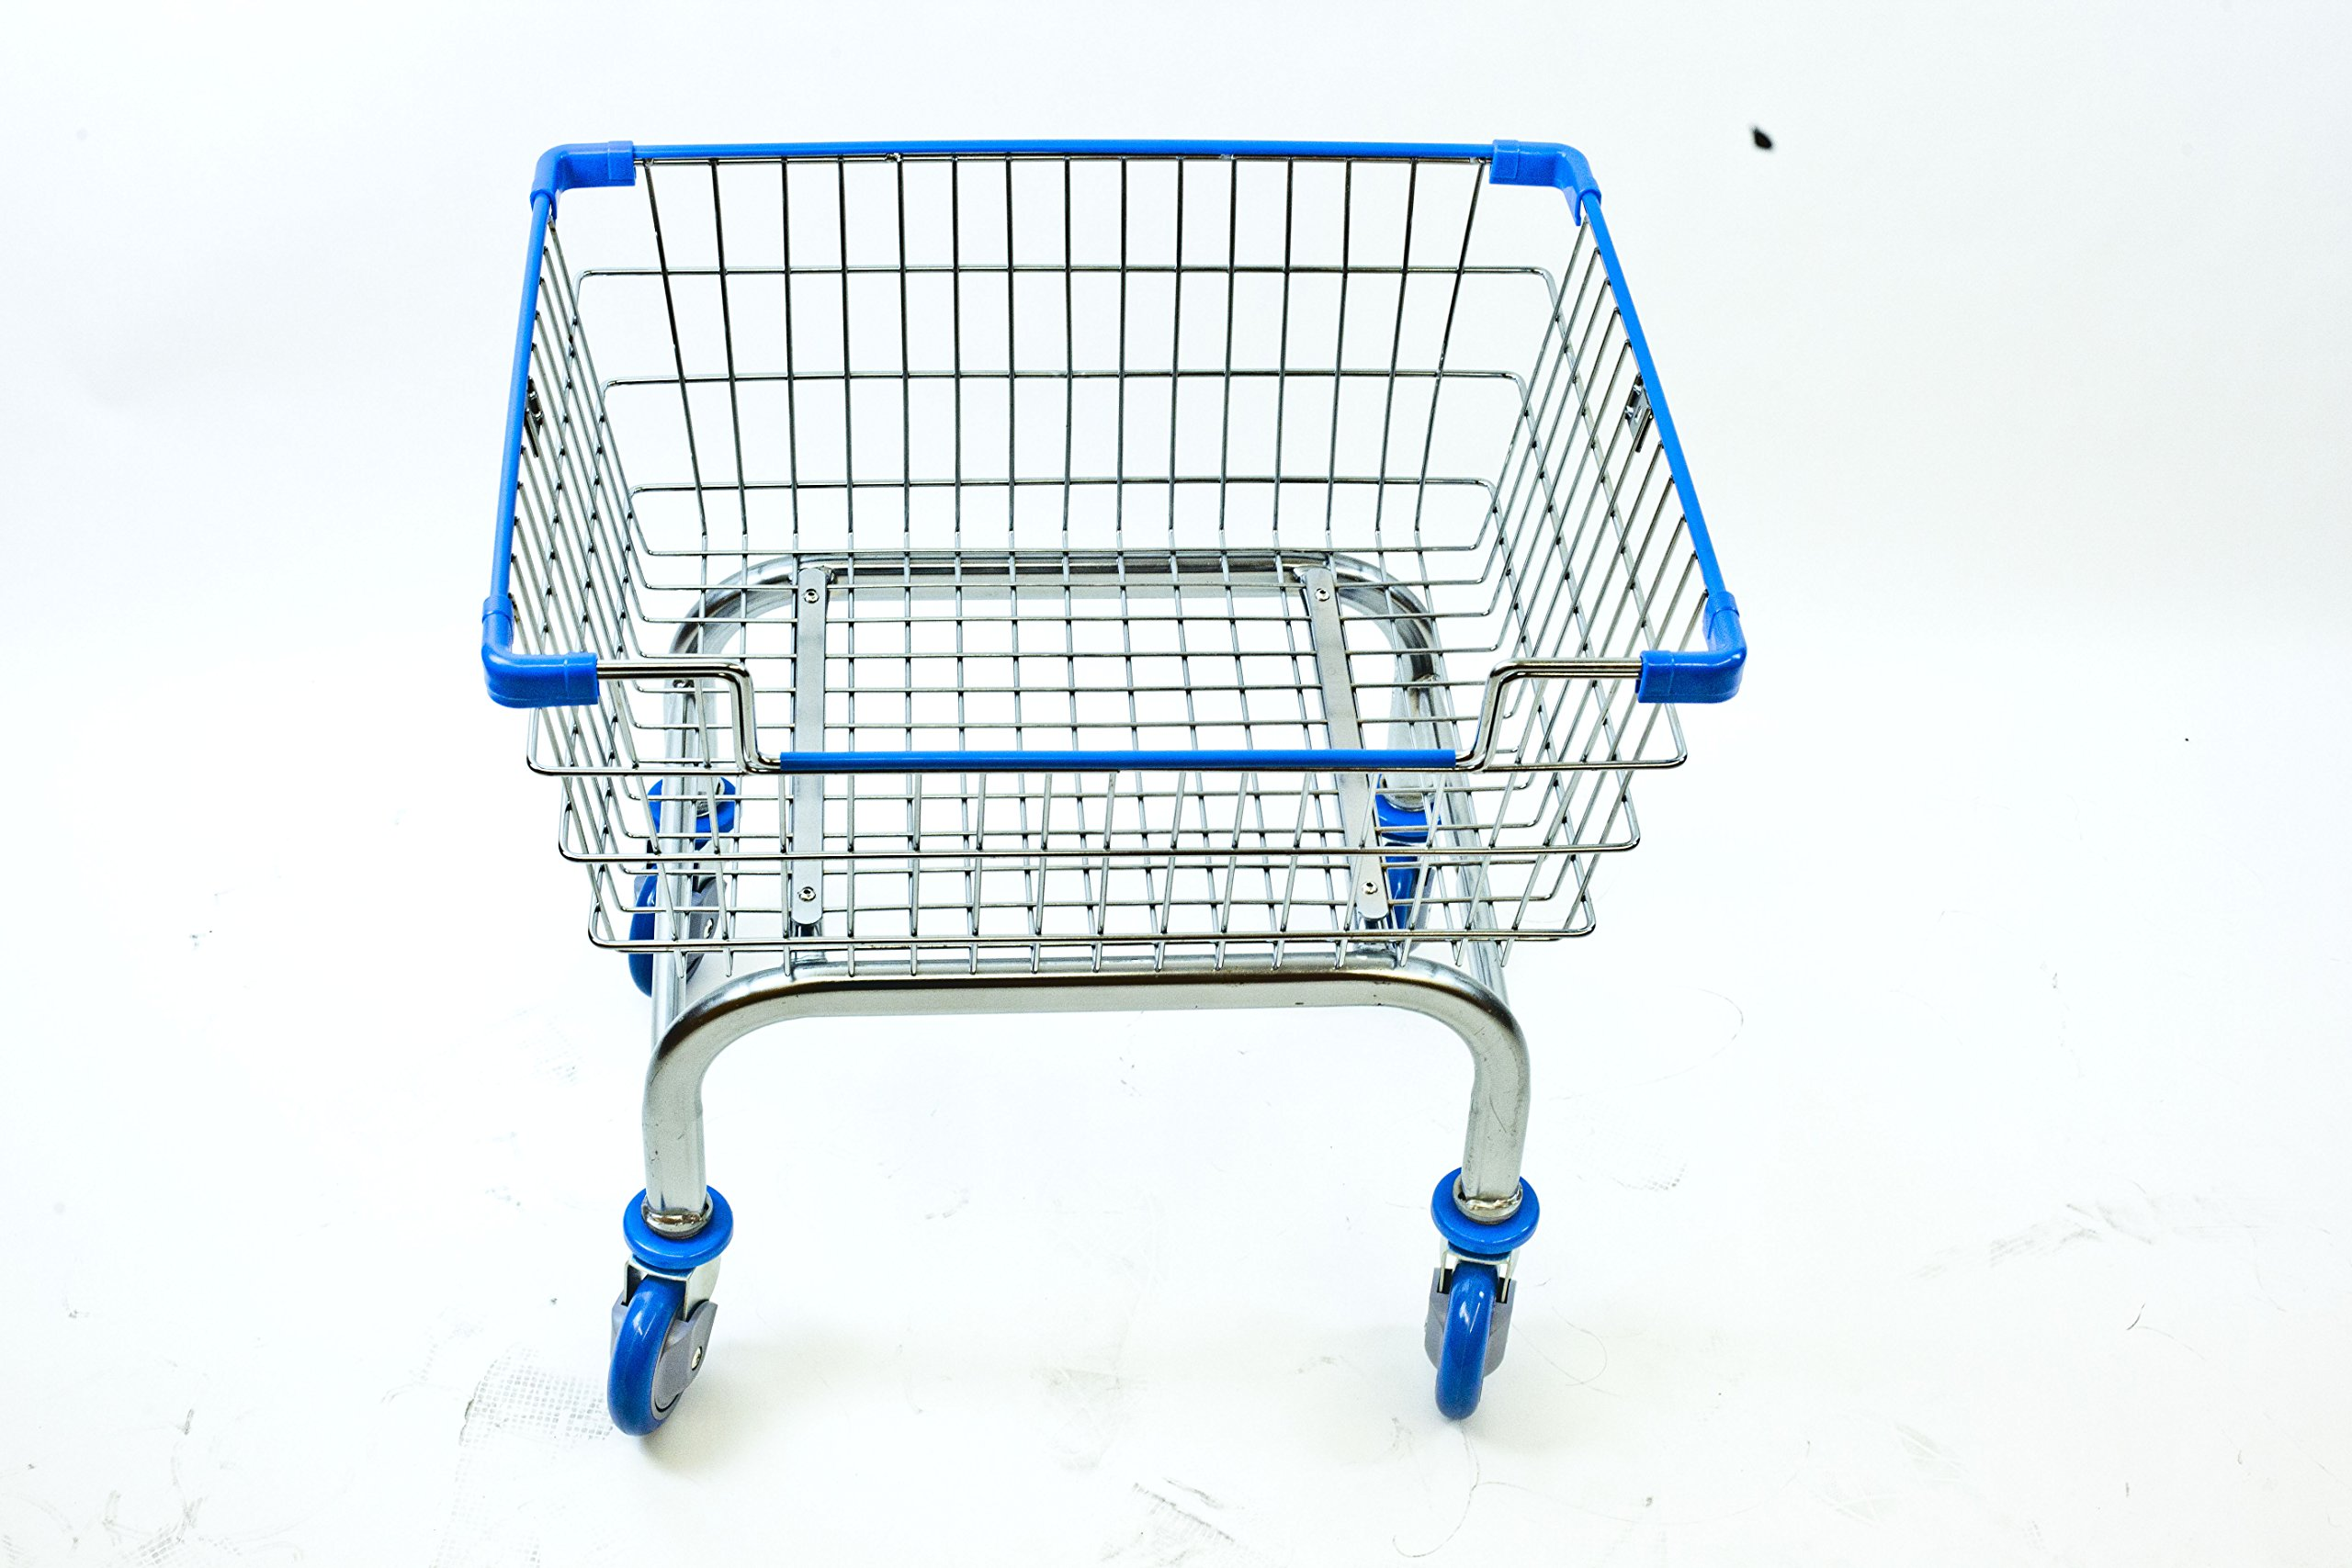 Cart⊃ply Coin Laundry Cart, Laundry Cart[chrome]without Pole Rack (BLUE)